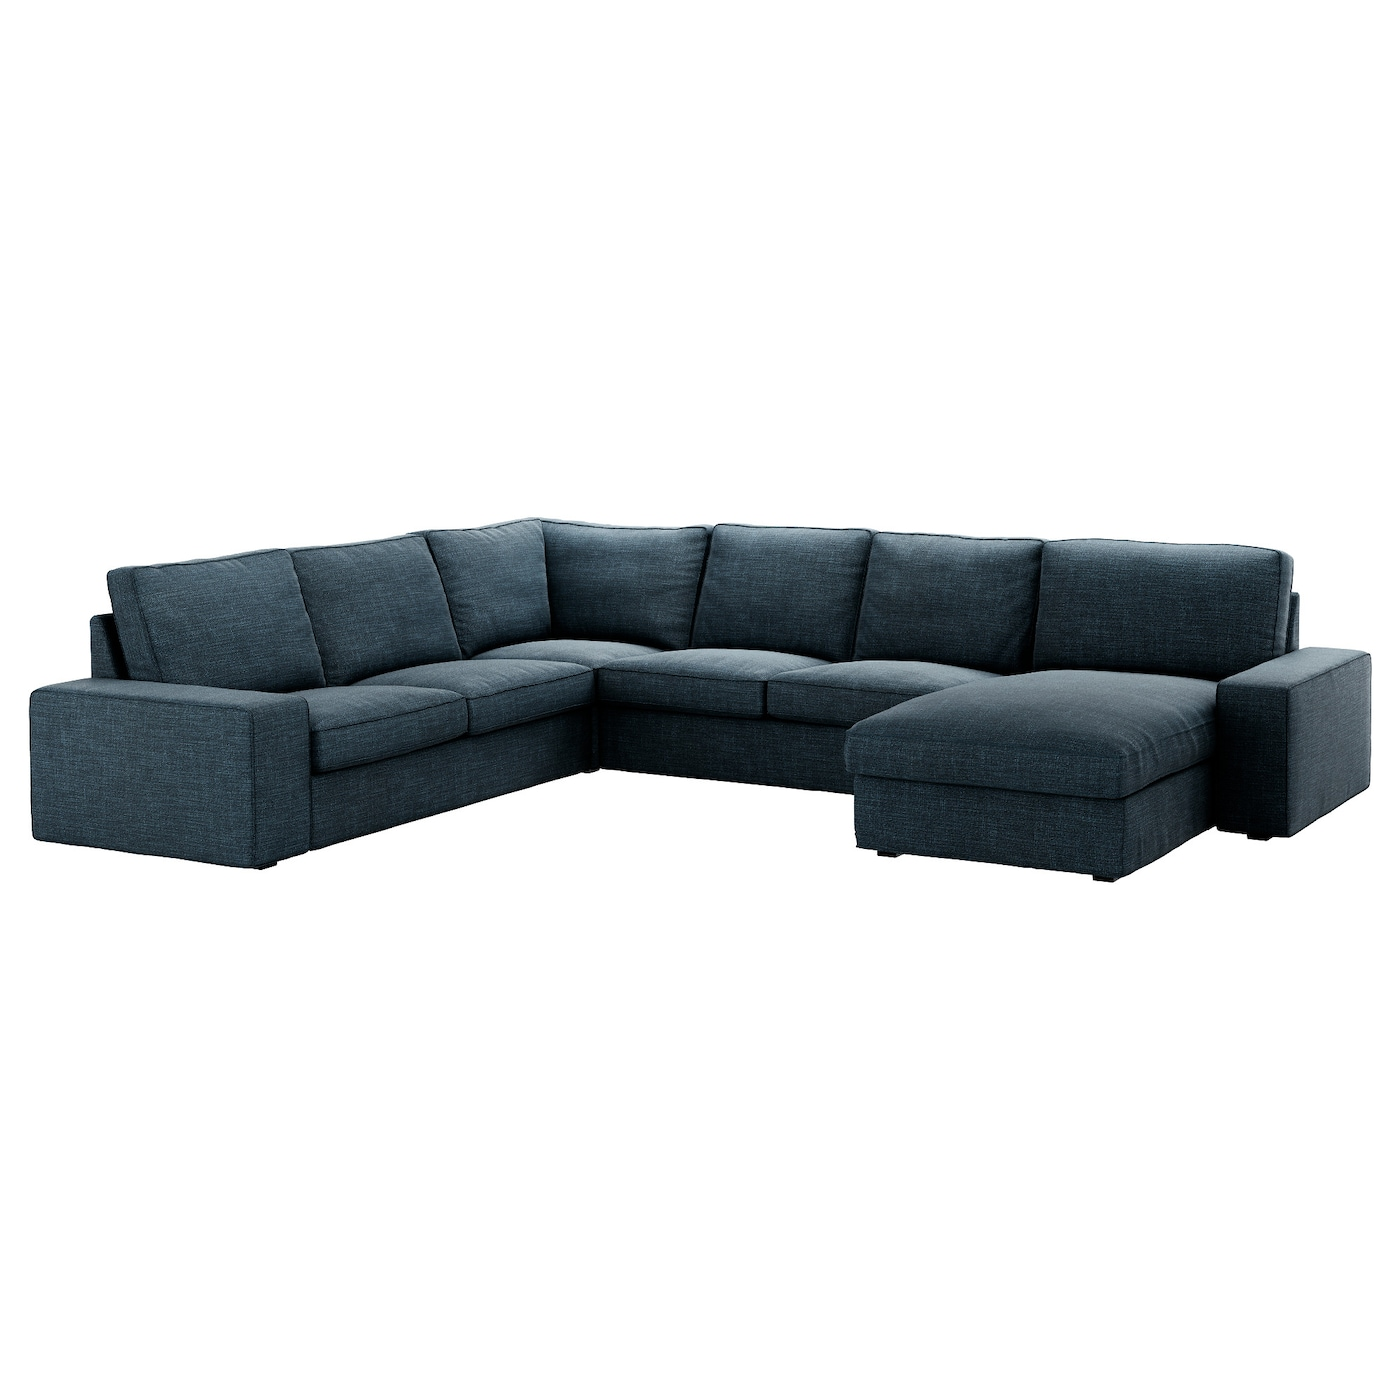 Kivik corner sofa 5 seat with chaise longue hillared dark for Chaise longue salon